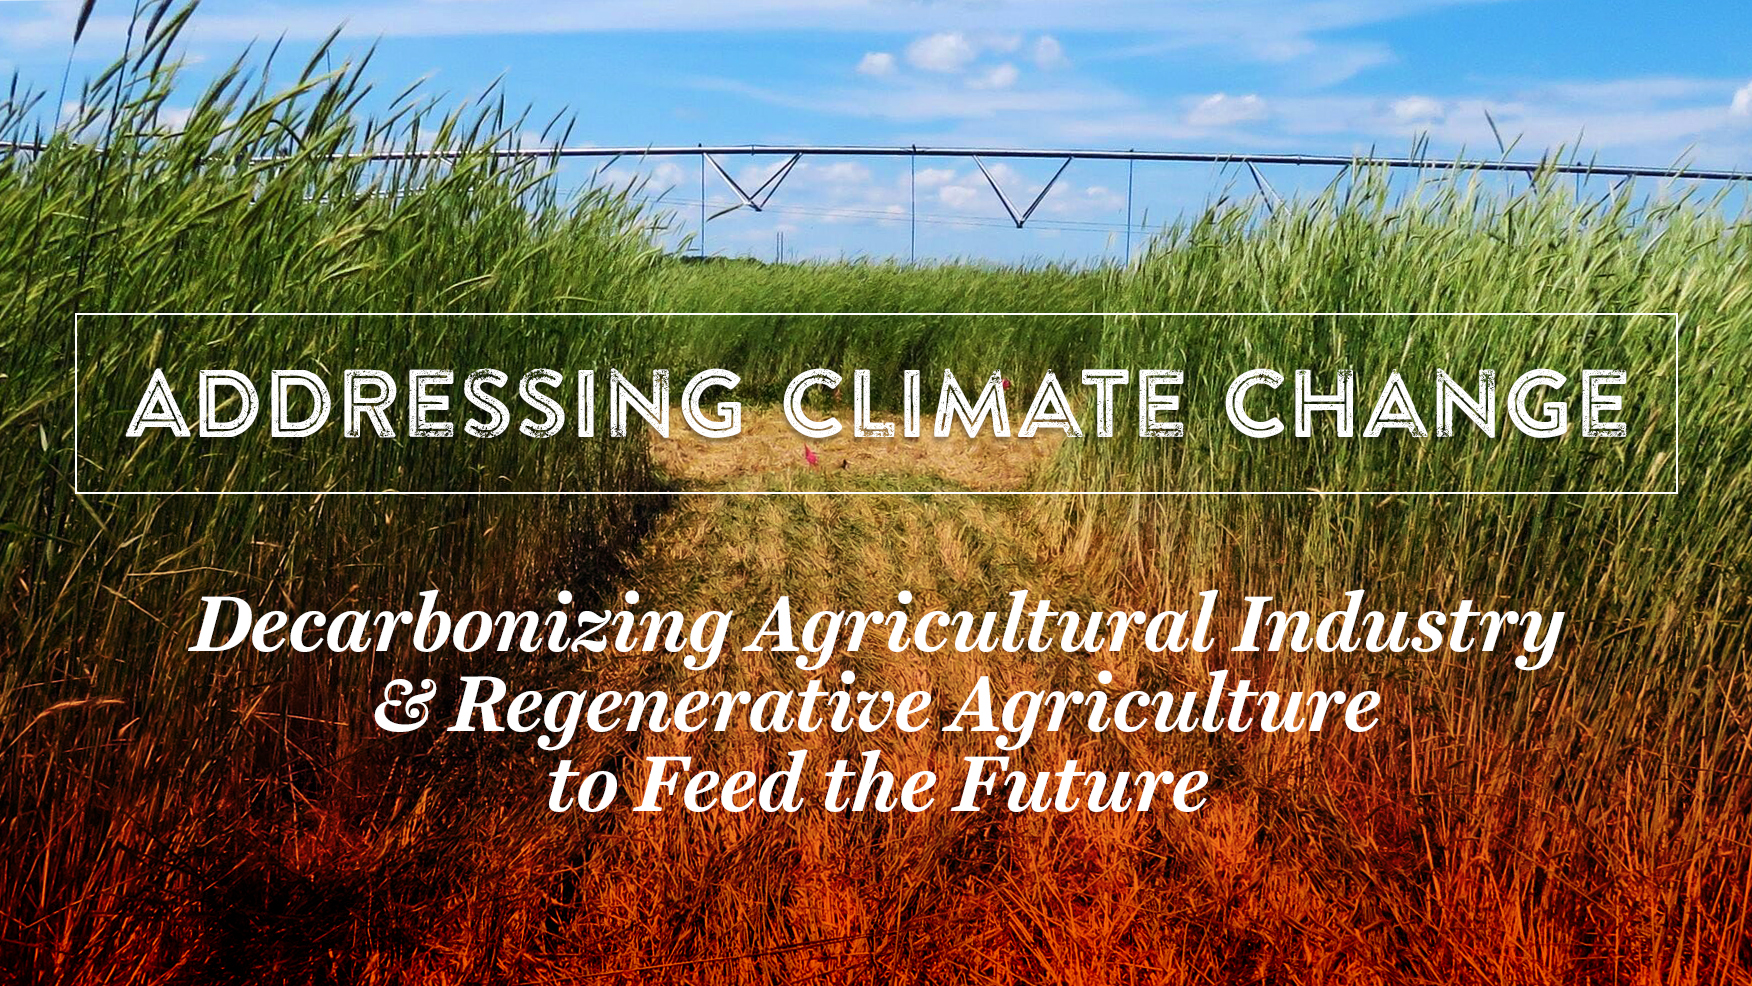 Addressing Climate Change: Decarbonizing Ag Industry and Regenerative Ag to Feed the Future